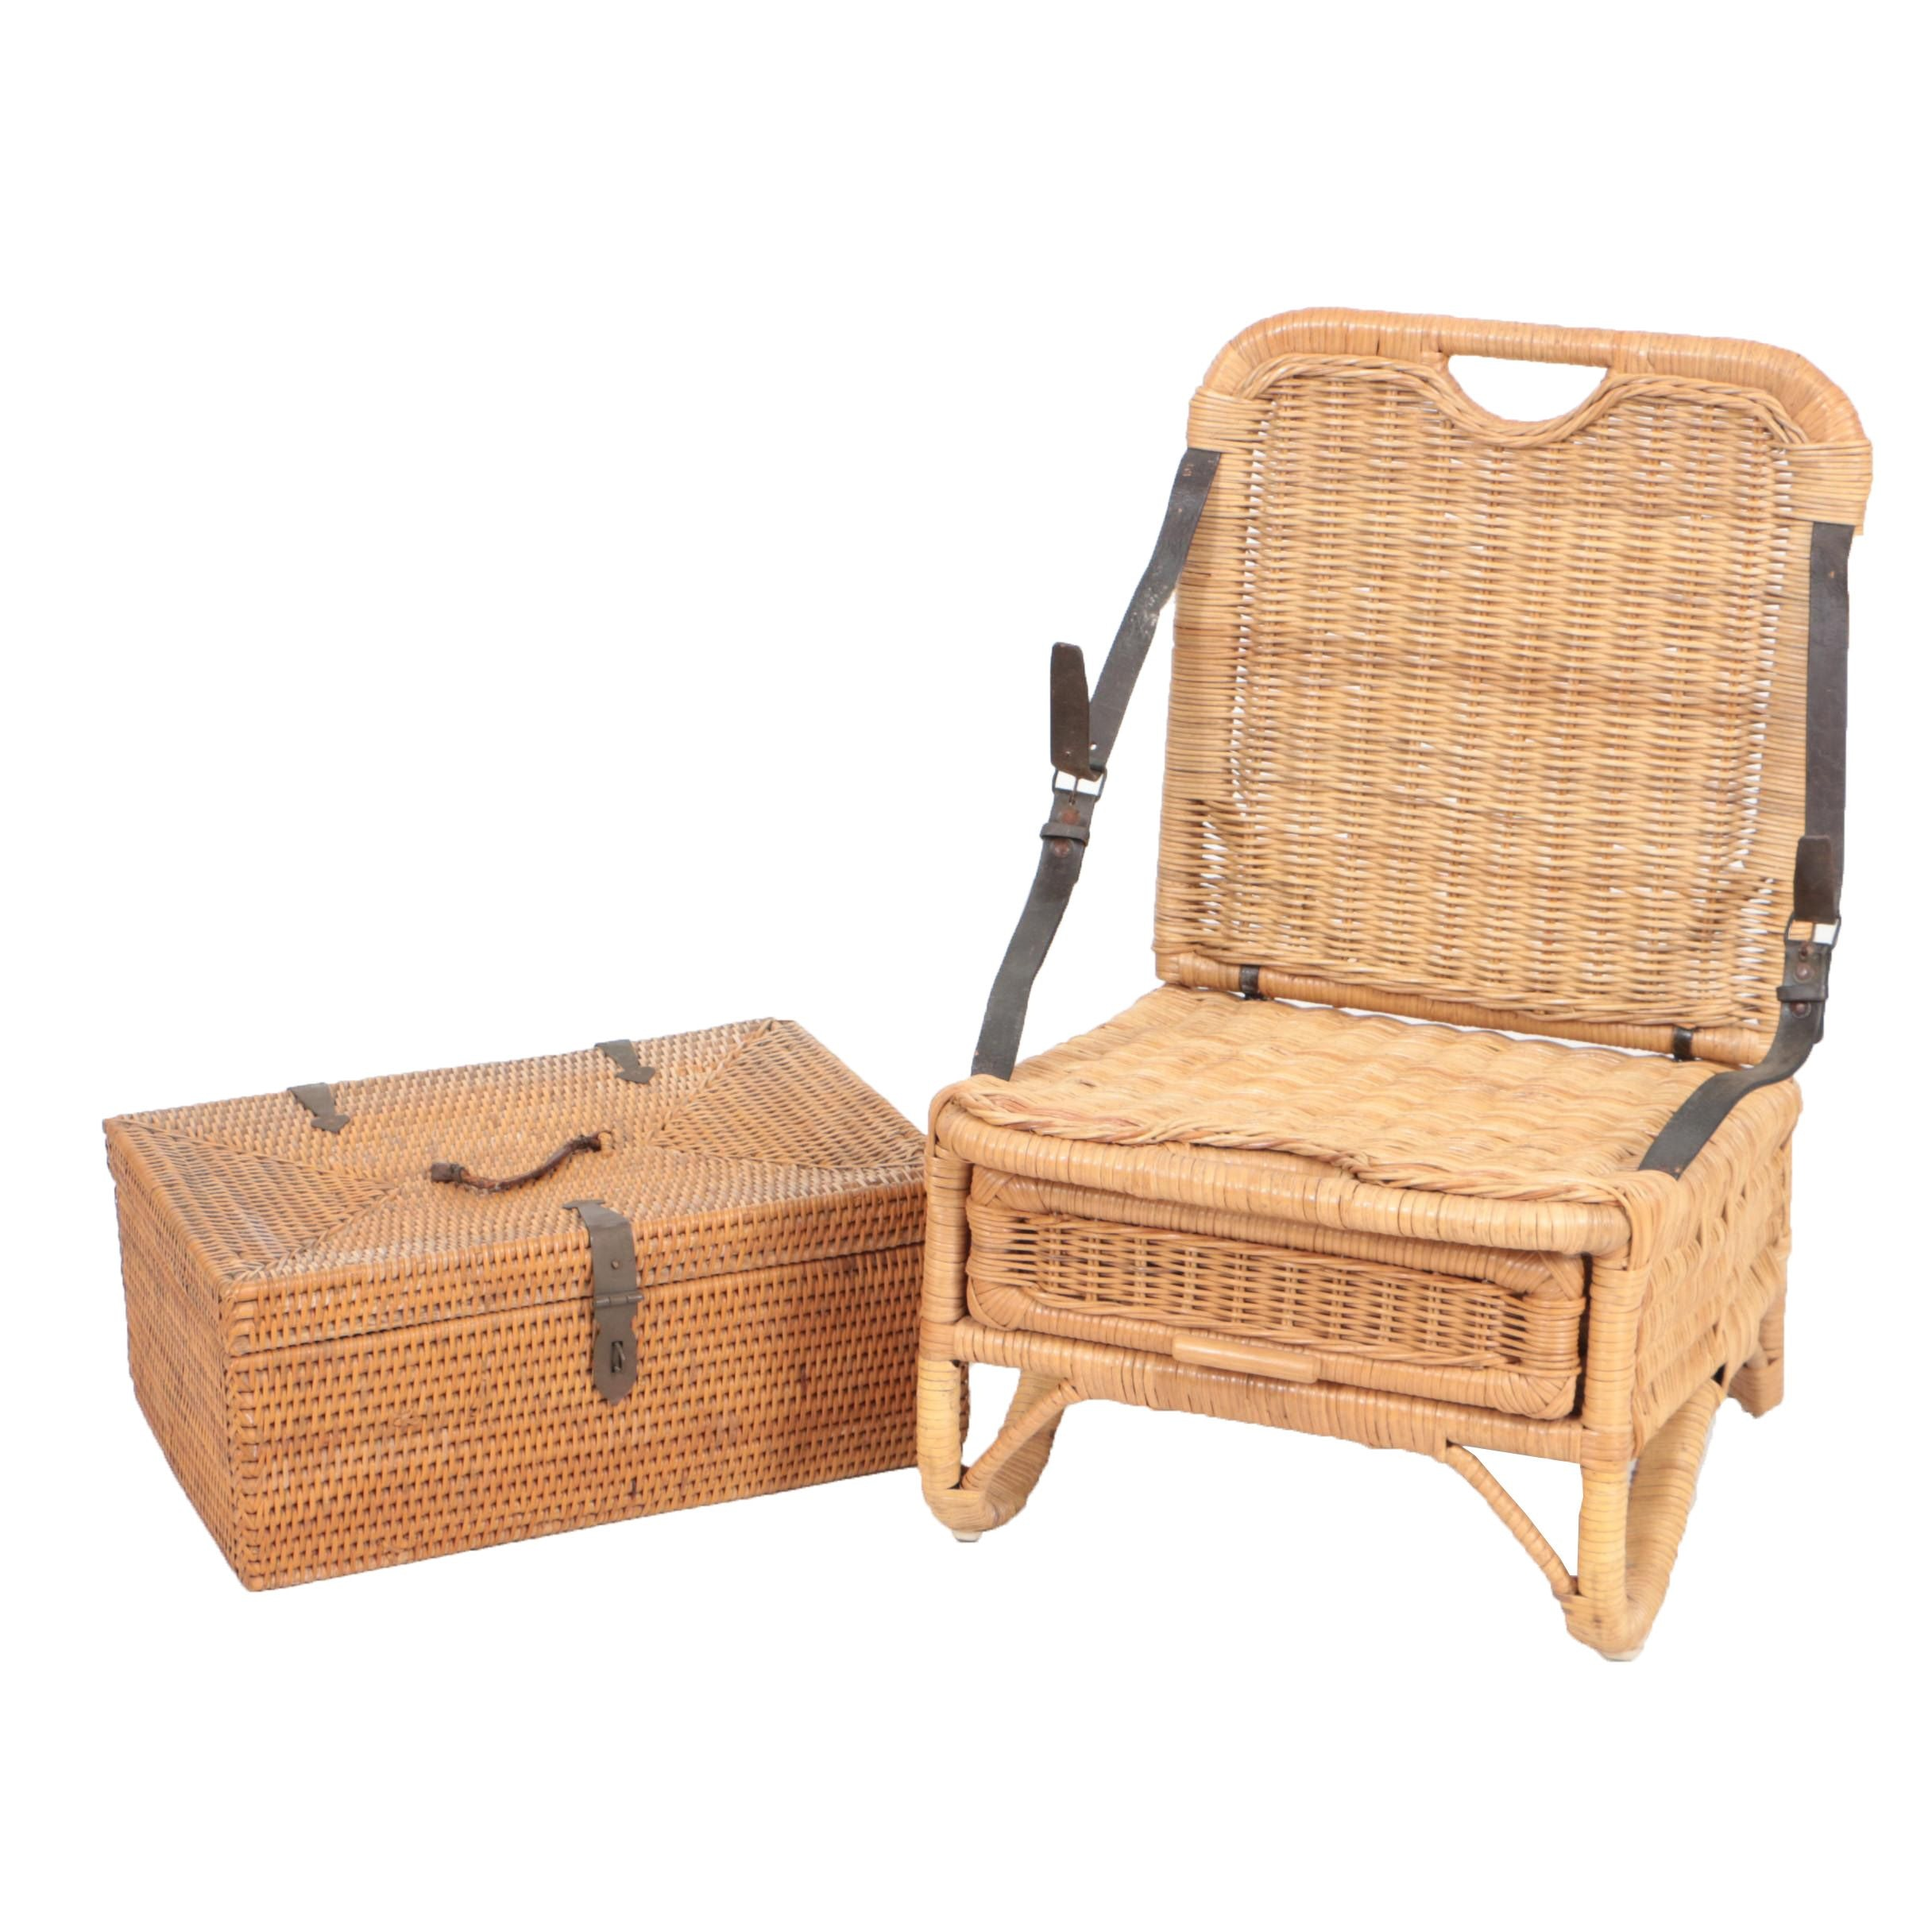 Vintage Picnic Basket and Folding Camp Chair